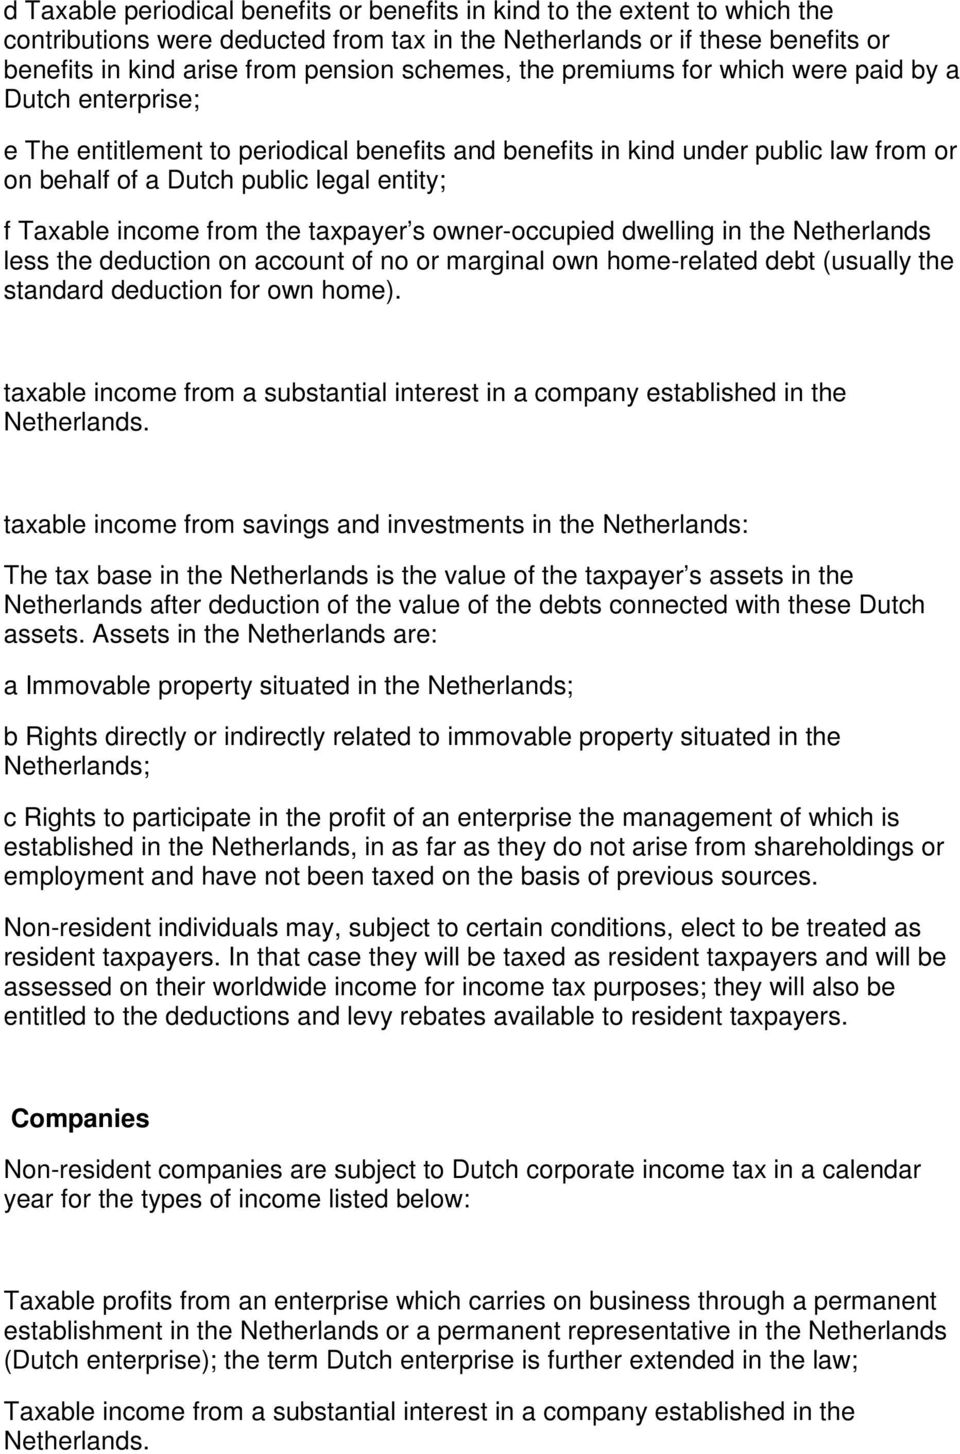 Taxable income from the taxpayer s owner-occupied dwelling in the Netherlands less the deduction on account of no or marginal own home-related debt (usually the standard deduction for own home).